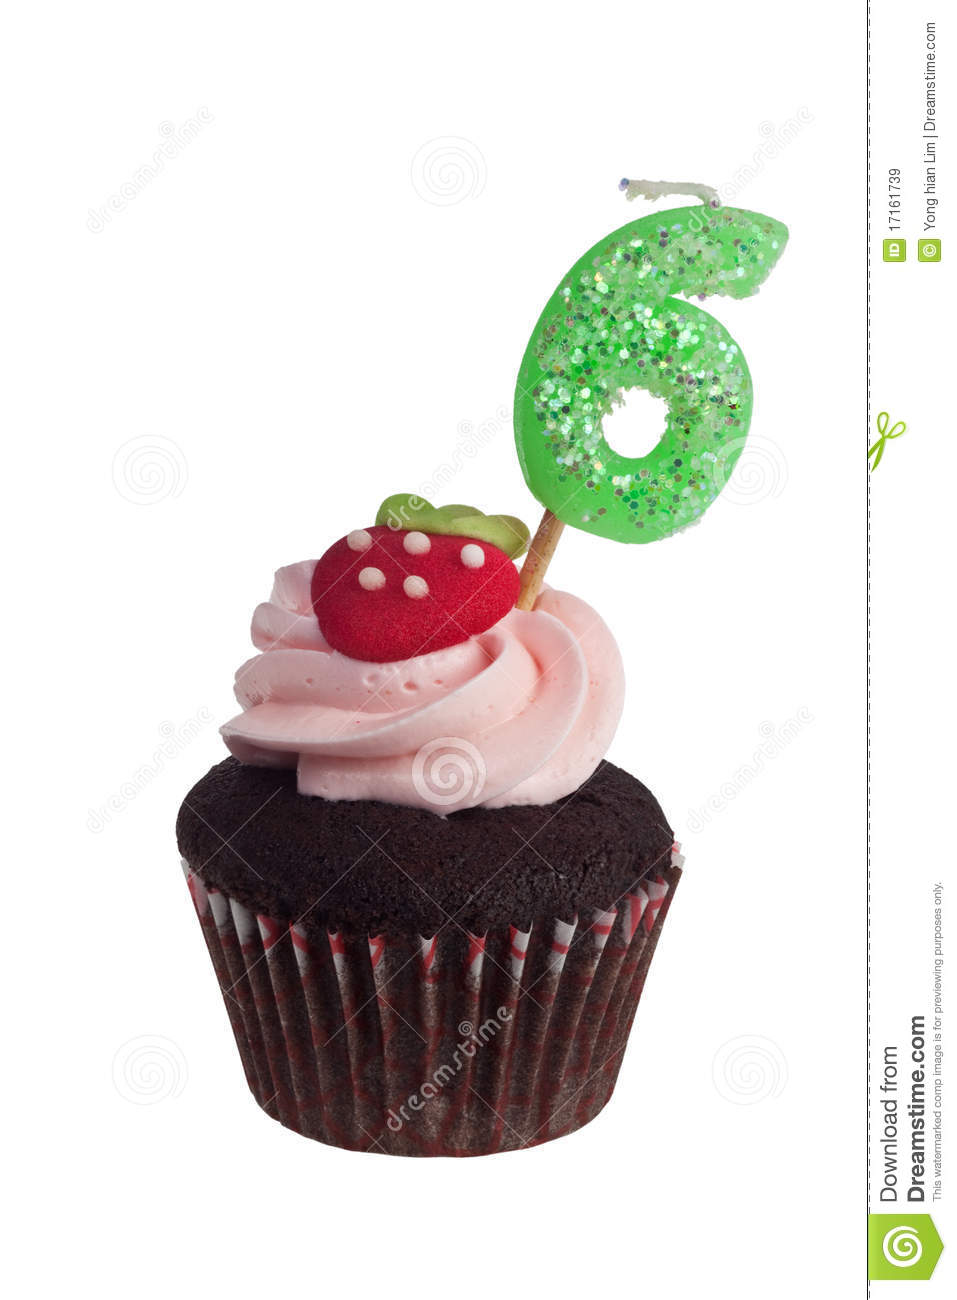 Mini Cupcake With Birthday Candle For Six Year Old Royalty